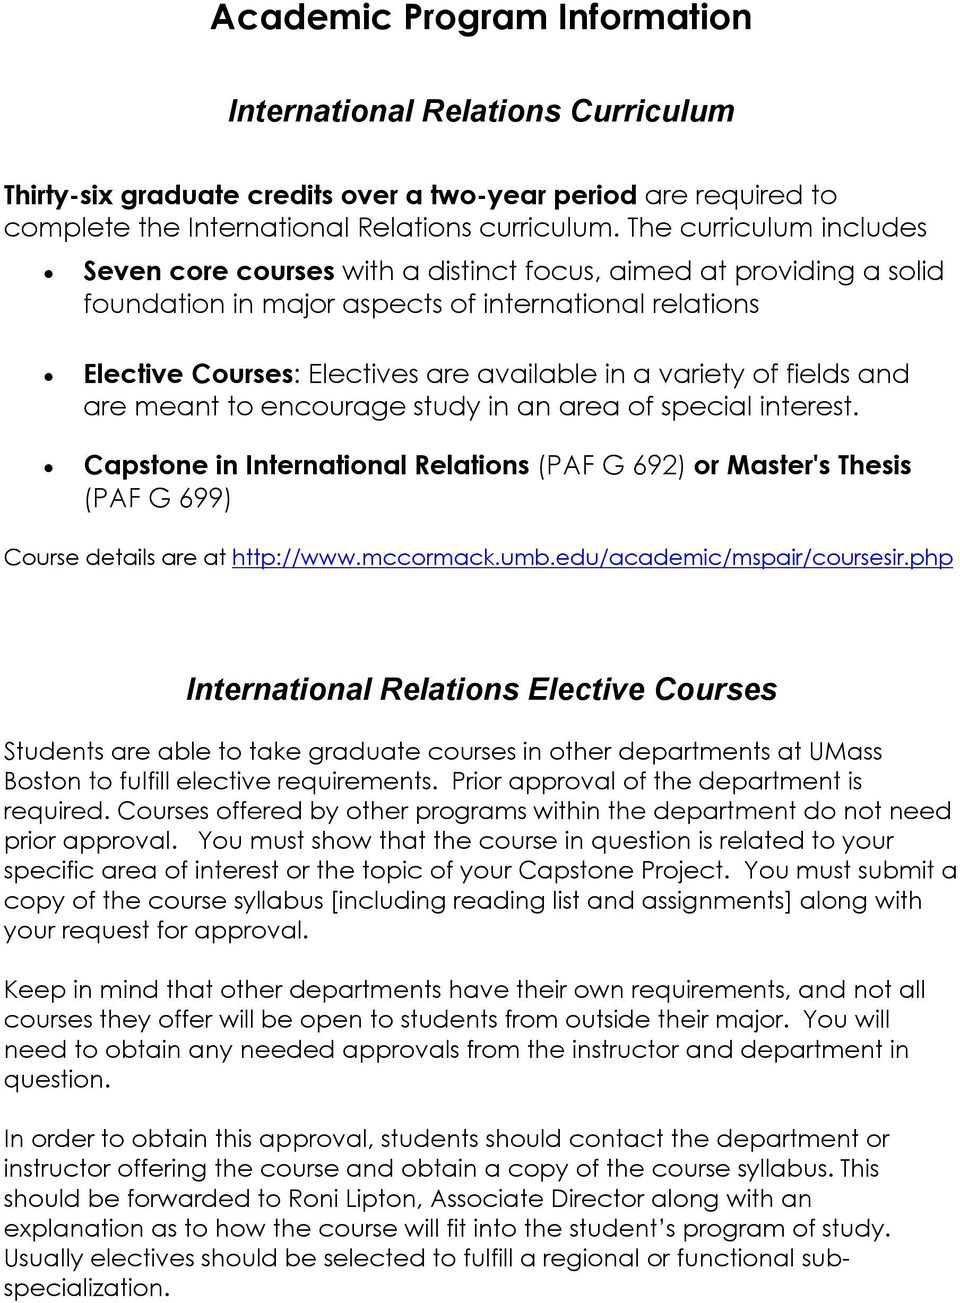 variety of fields and are meant to encourage study in an area of special interest. Capstone in International Relations (PAF G 692) or Master's Thesis (PAF G 699) Course details are at http://www.